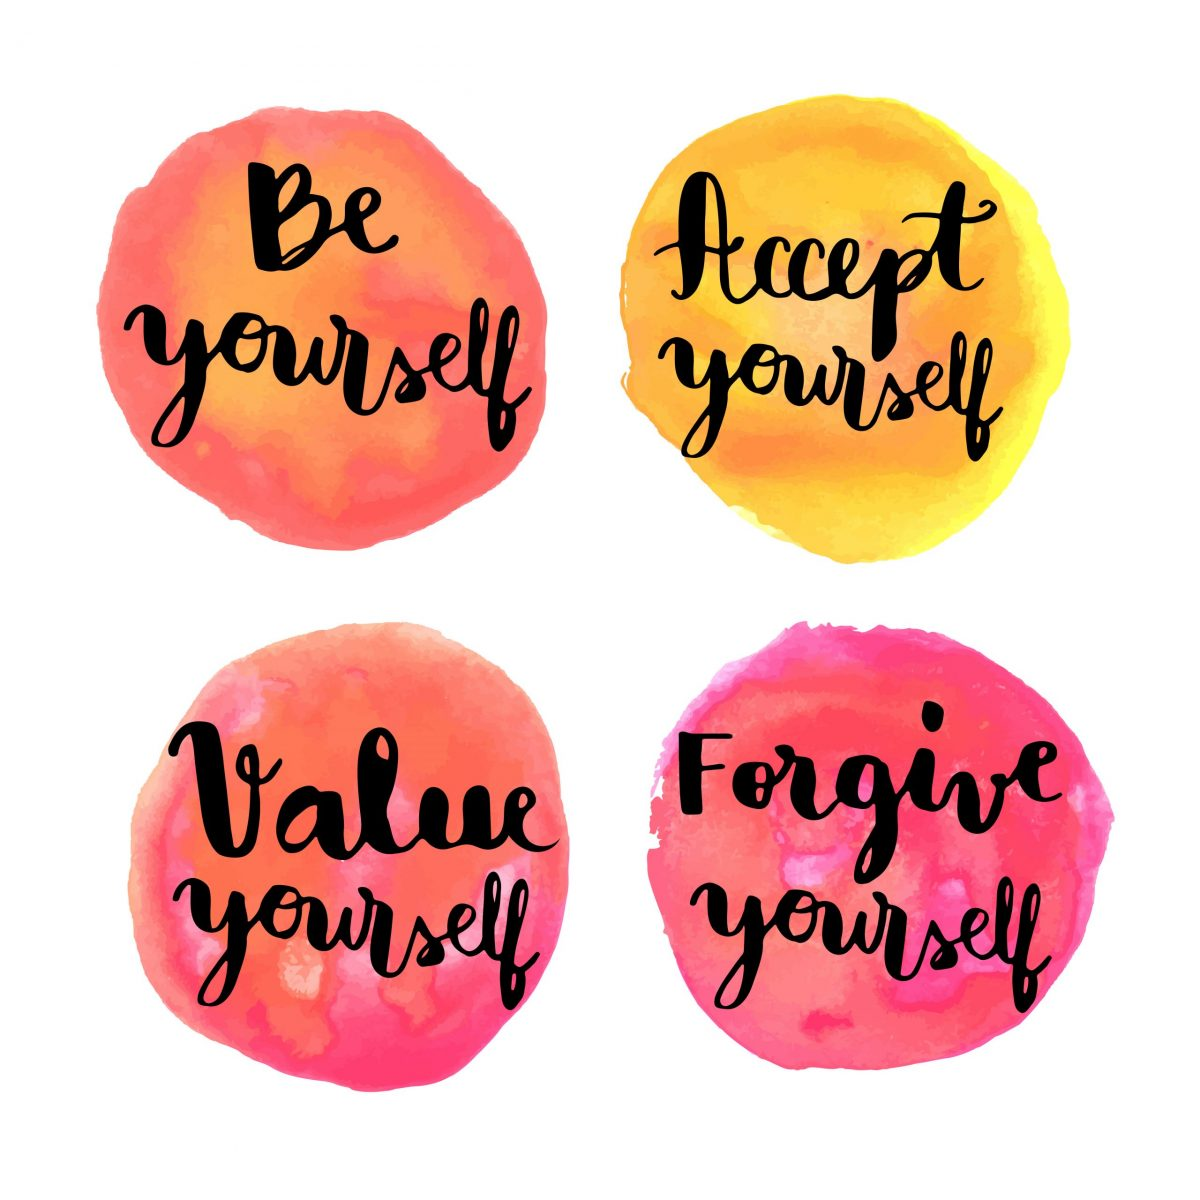 self care - be yourself, accept yourself, value yourself, forgive yourself